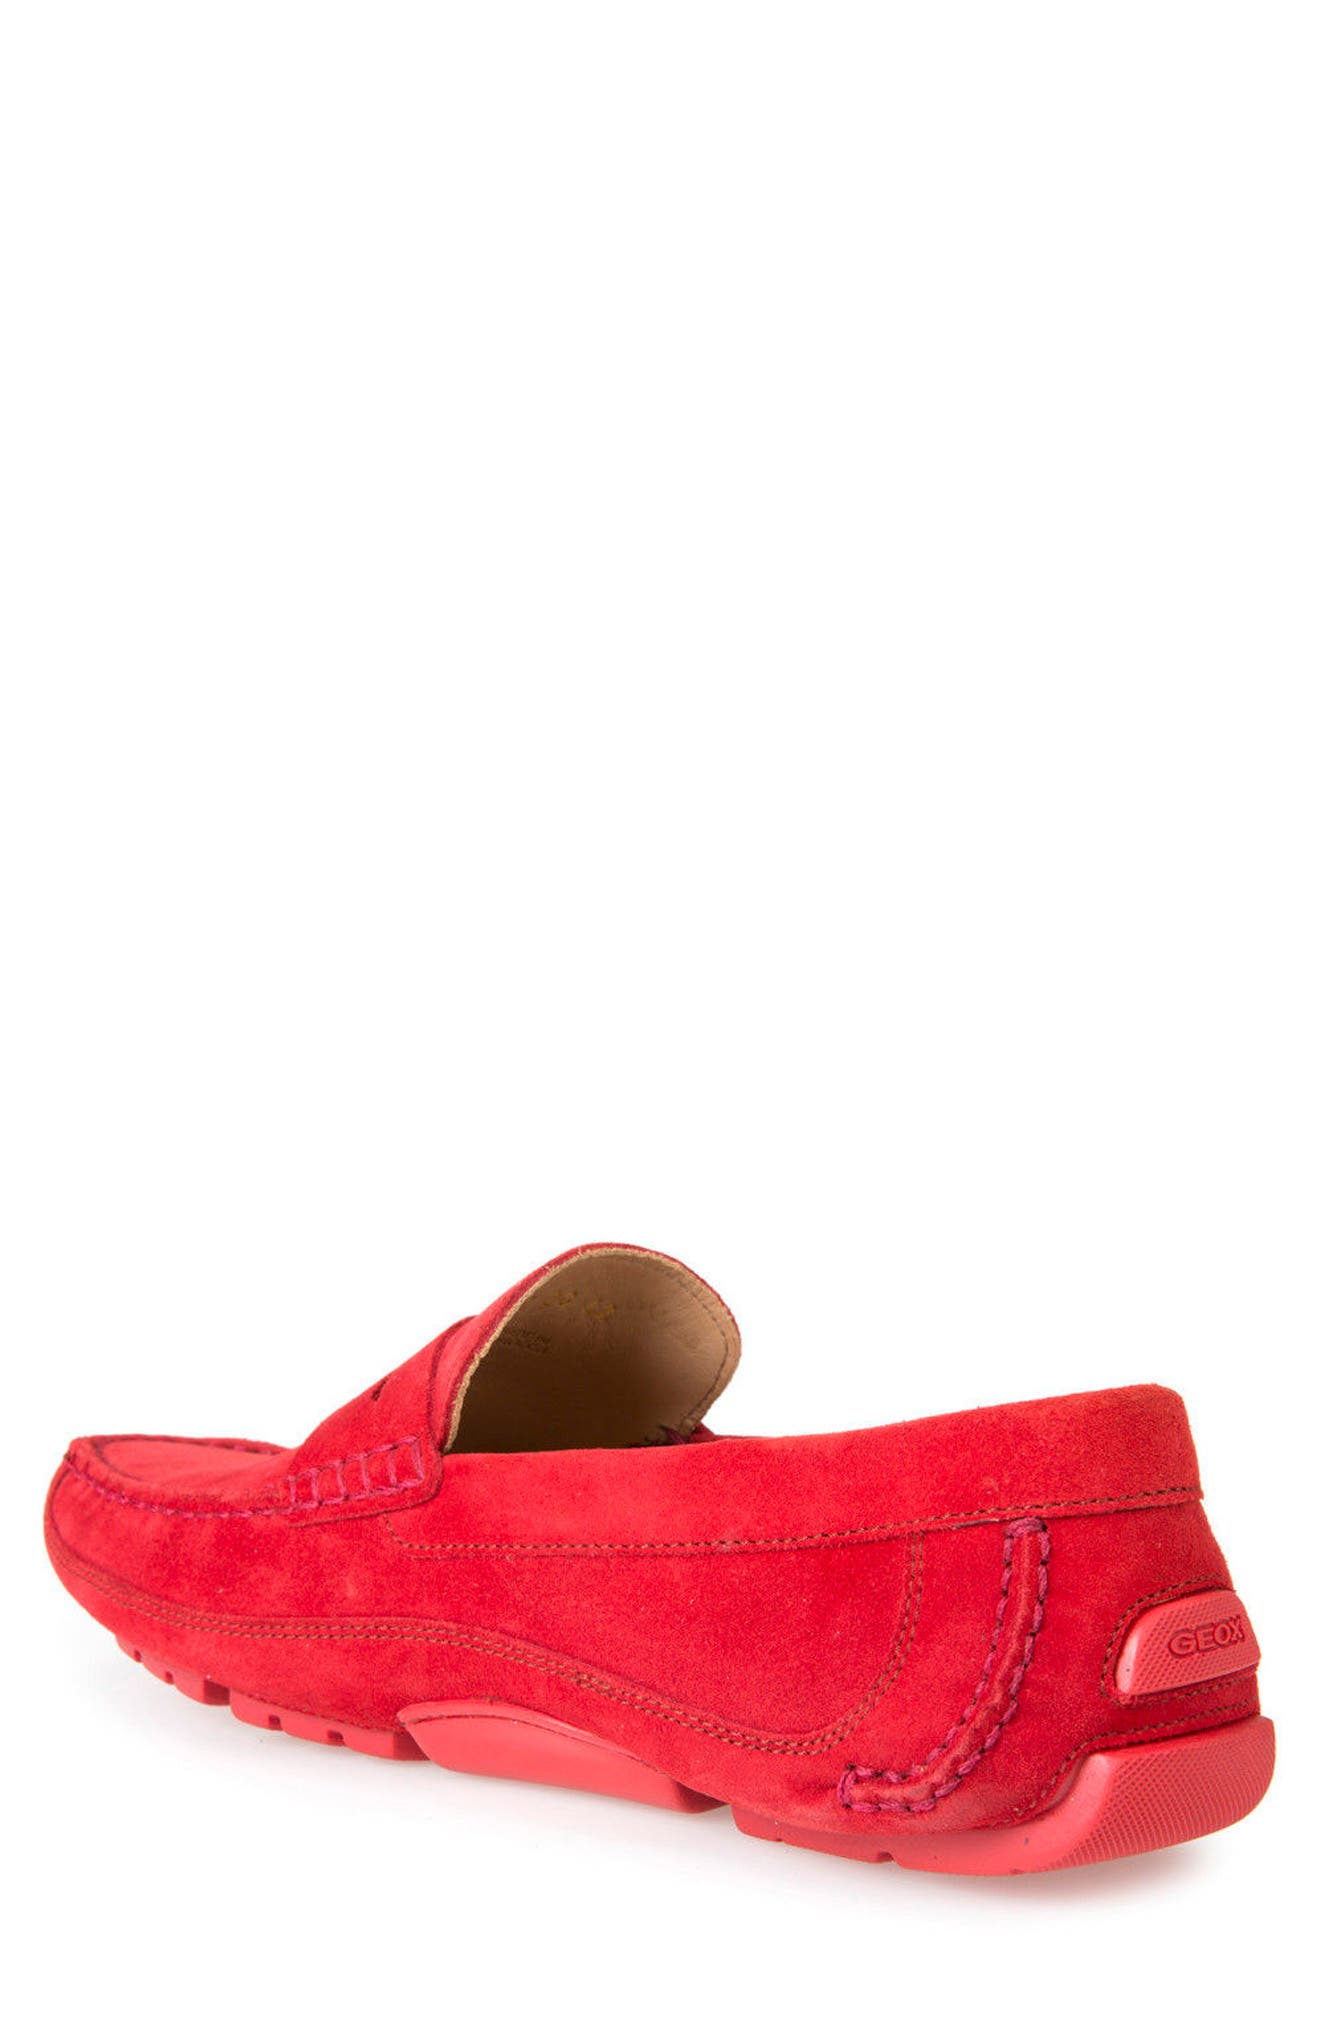 Melbourne 1 Driving Shoe,                             Alternate thumbnail 2, color,                             Red Suede